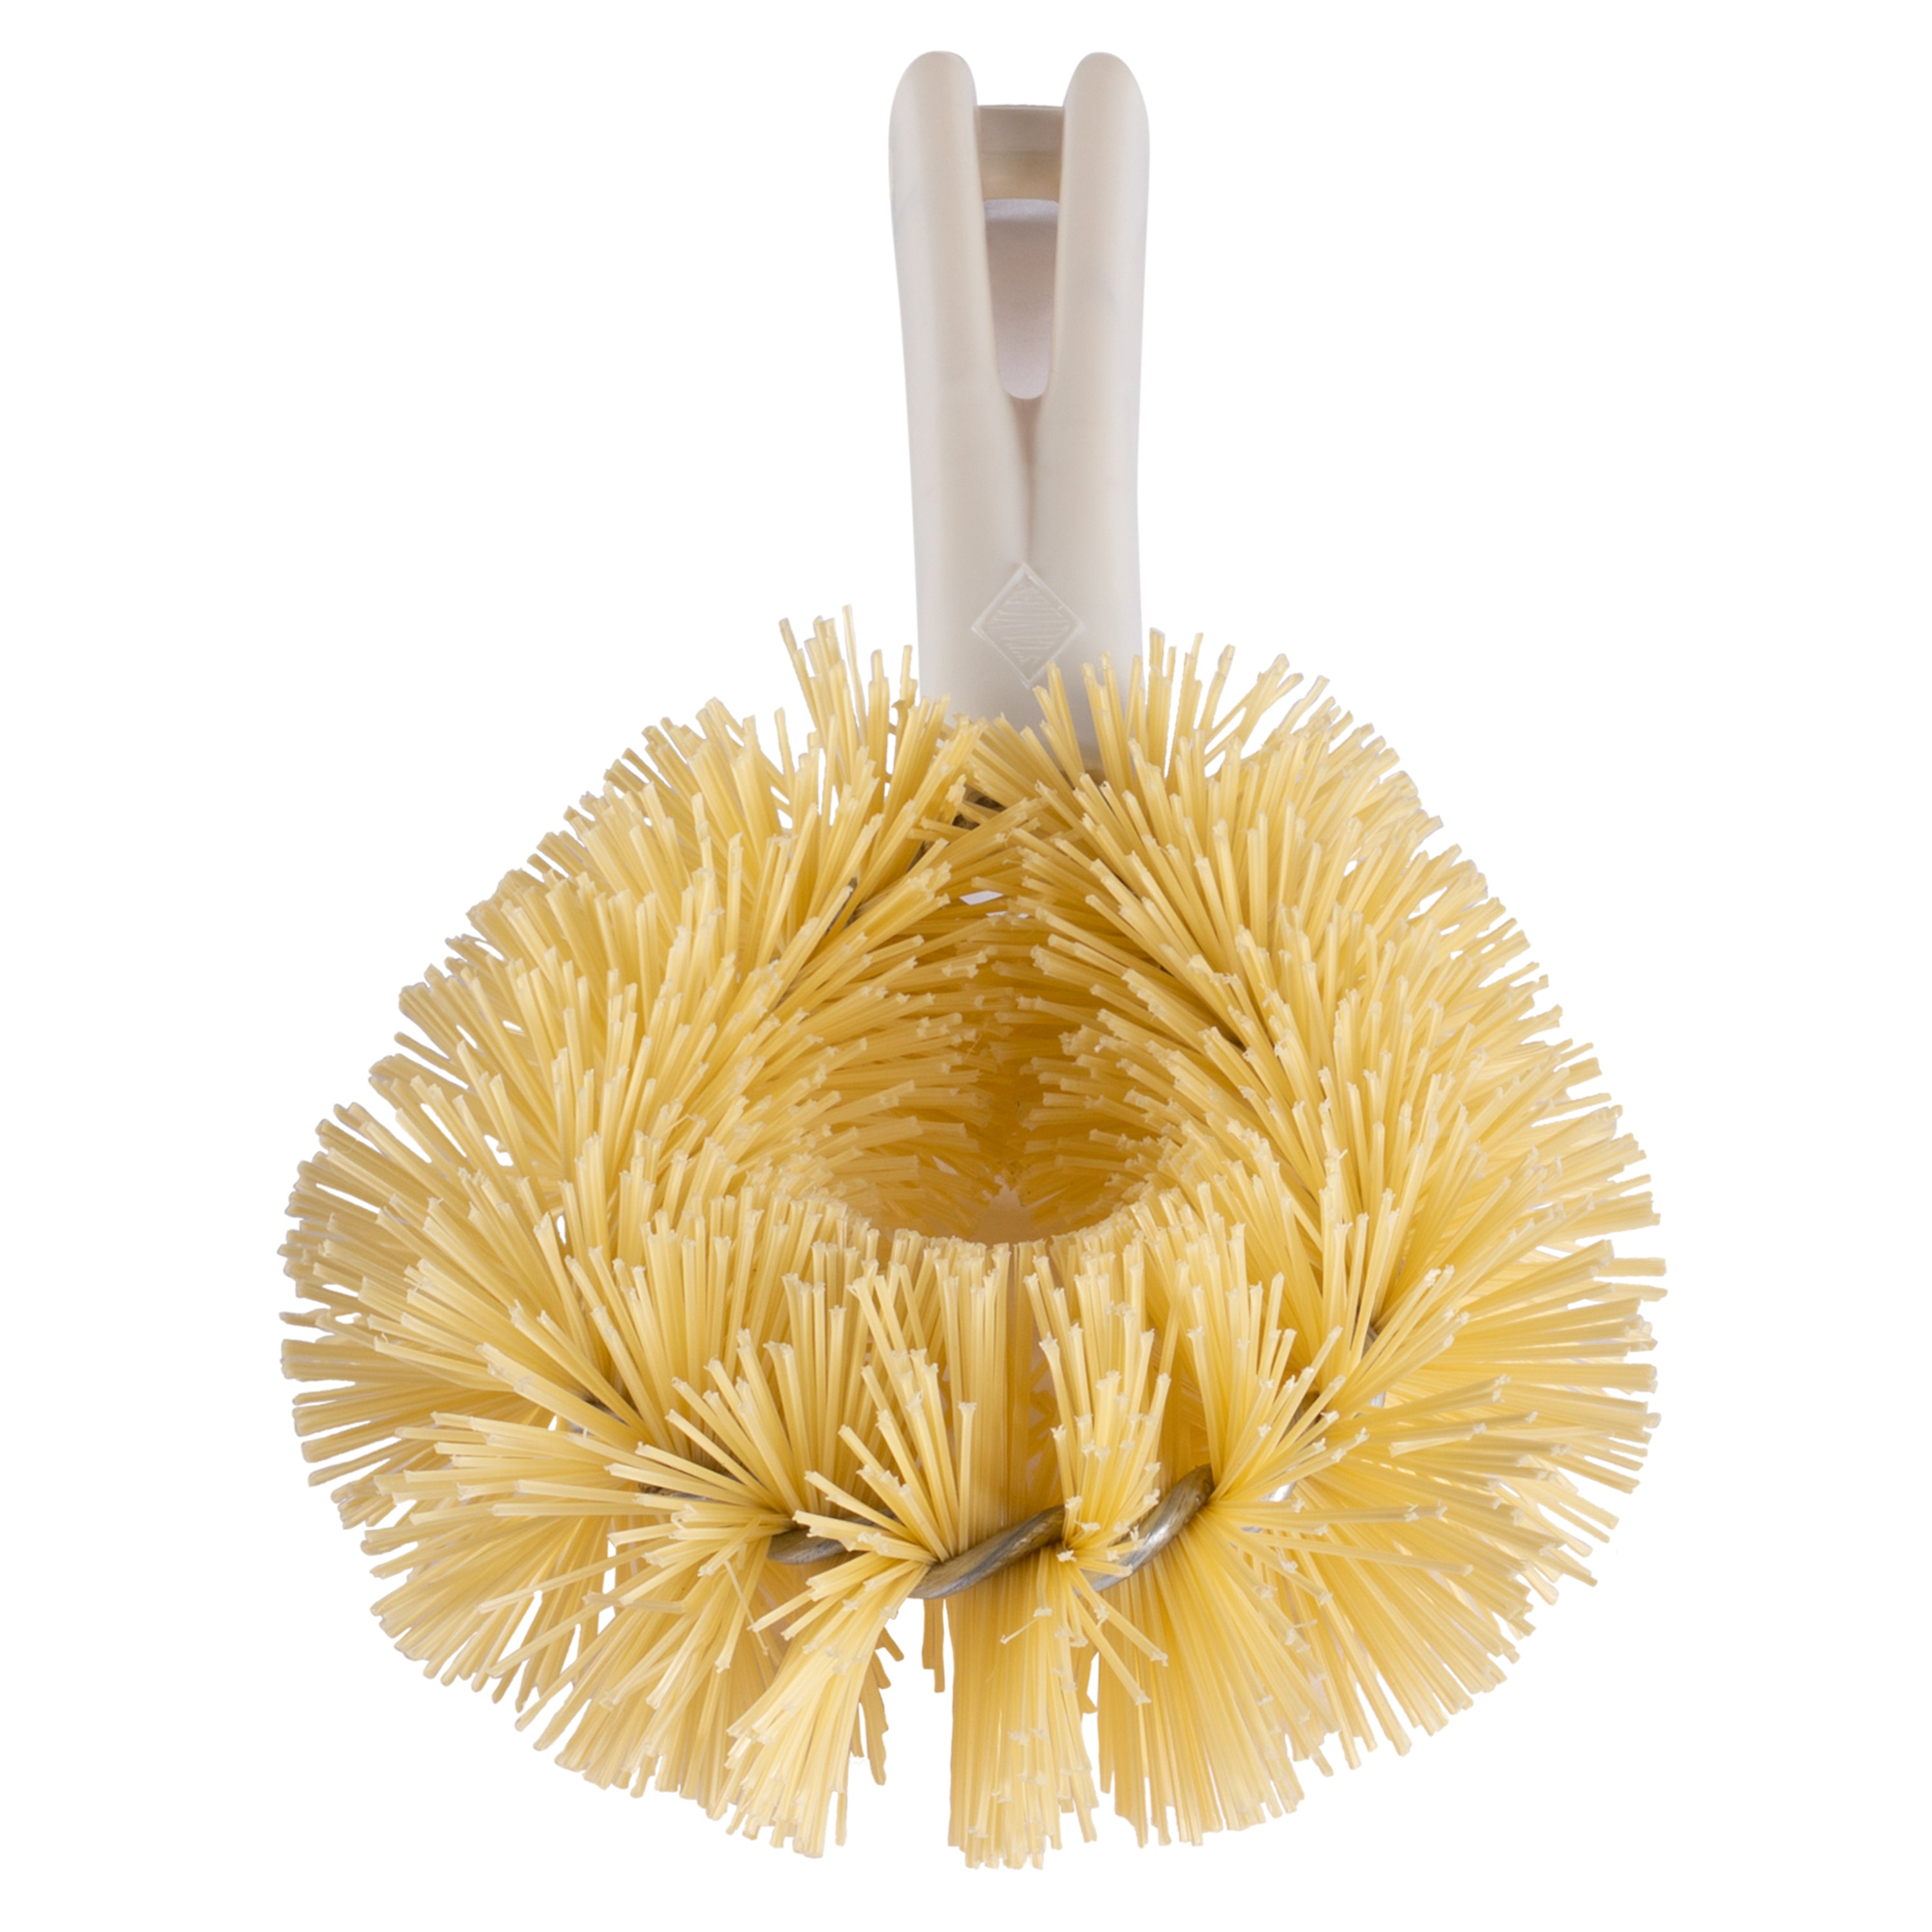 Original Vegetable Brush, Firm Bristled Veggie Scrubber